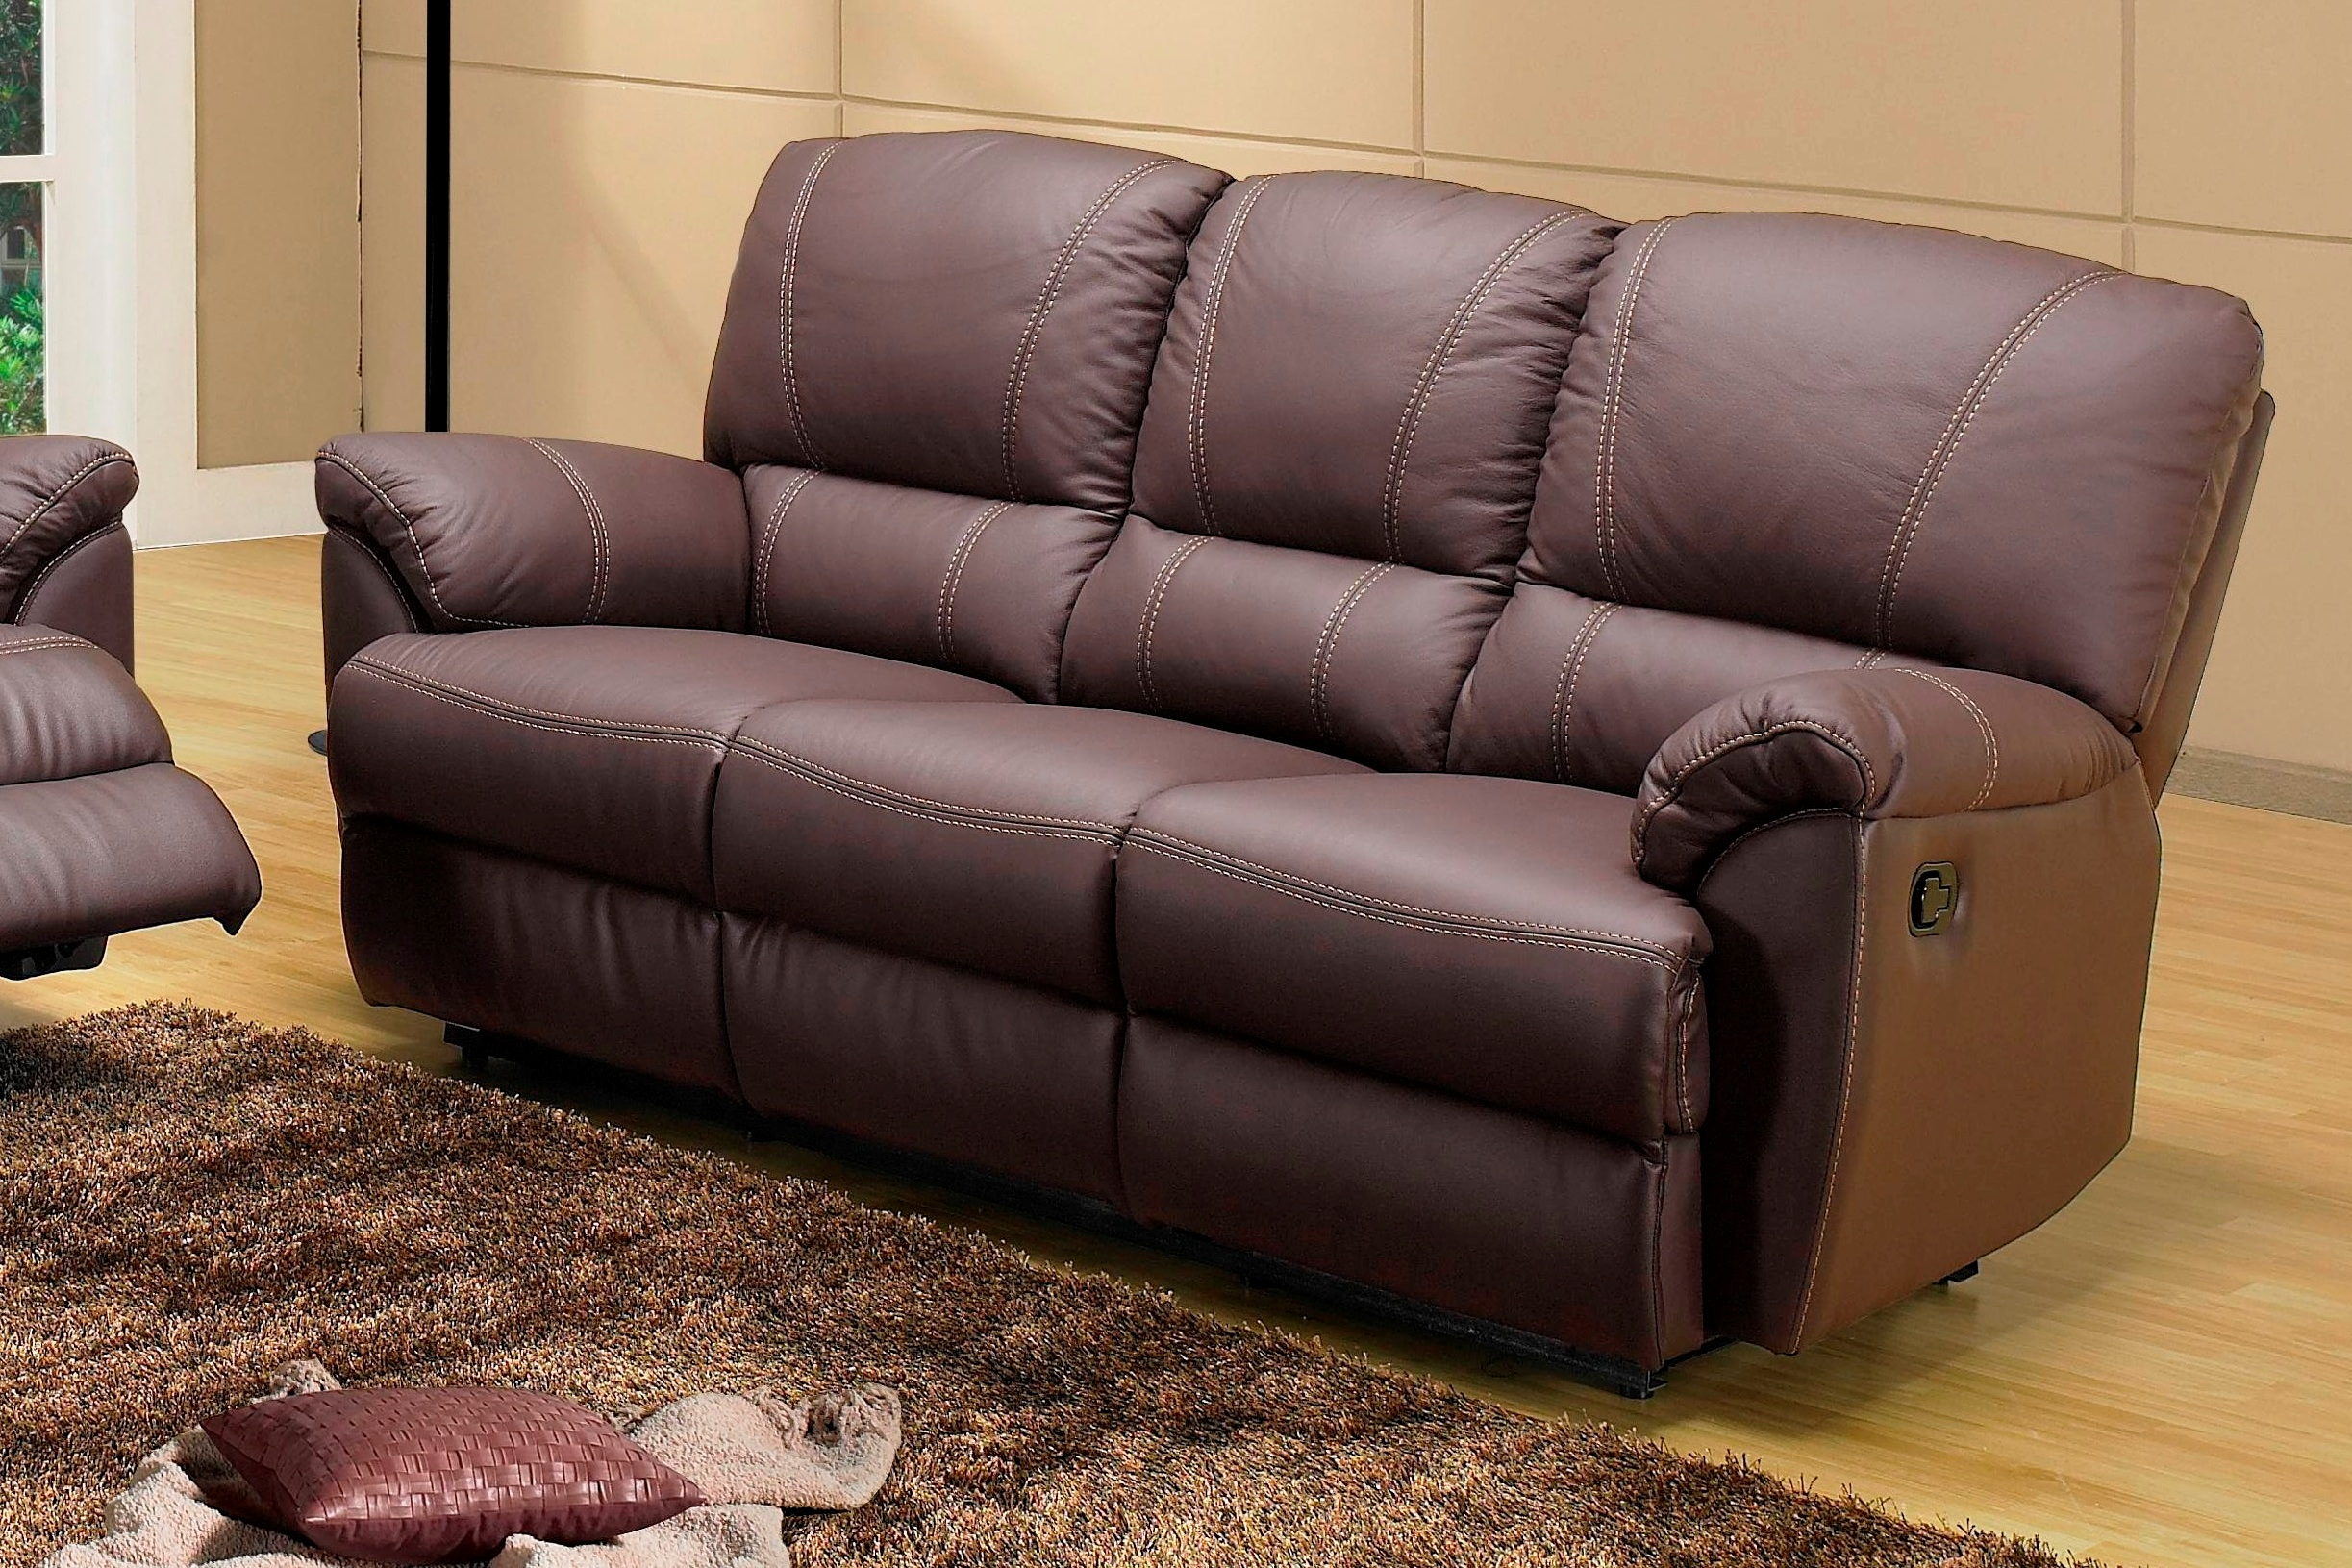 Salon canap relax en cuir buffle 3 2 places fauteuil relaxation ebay - Salon en cuir de buffle ...